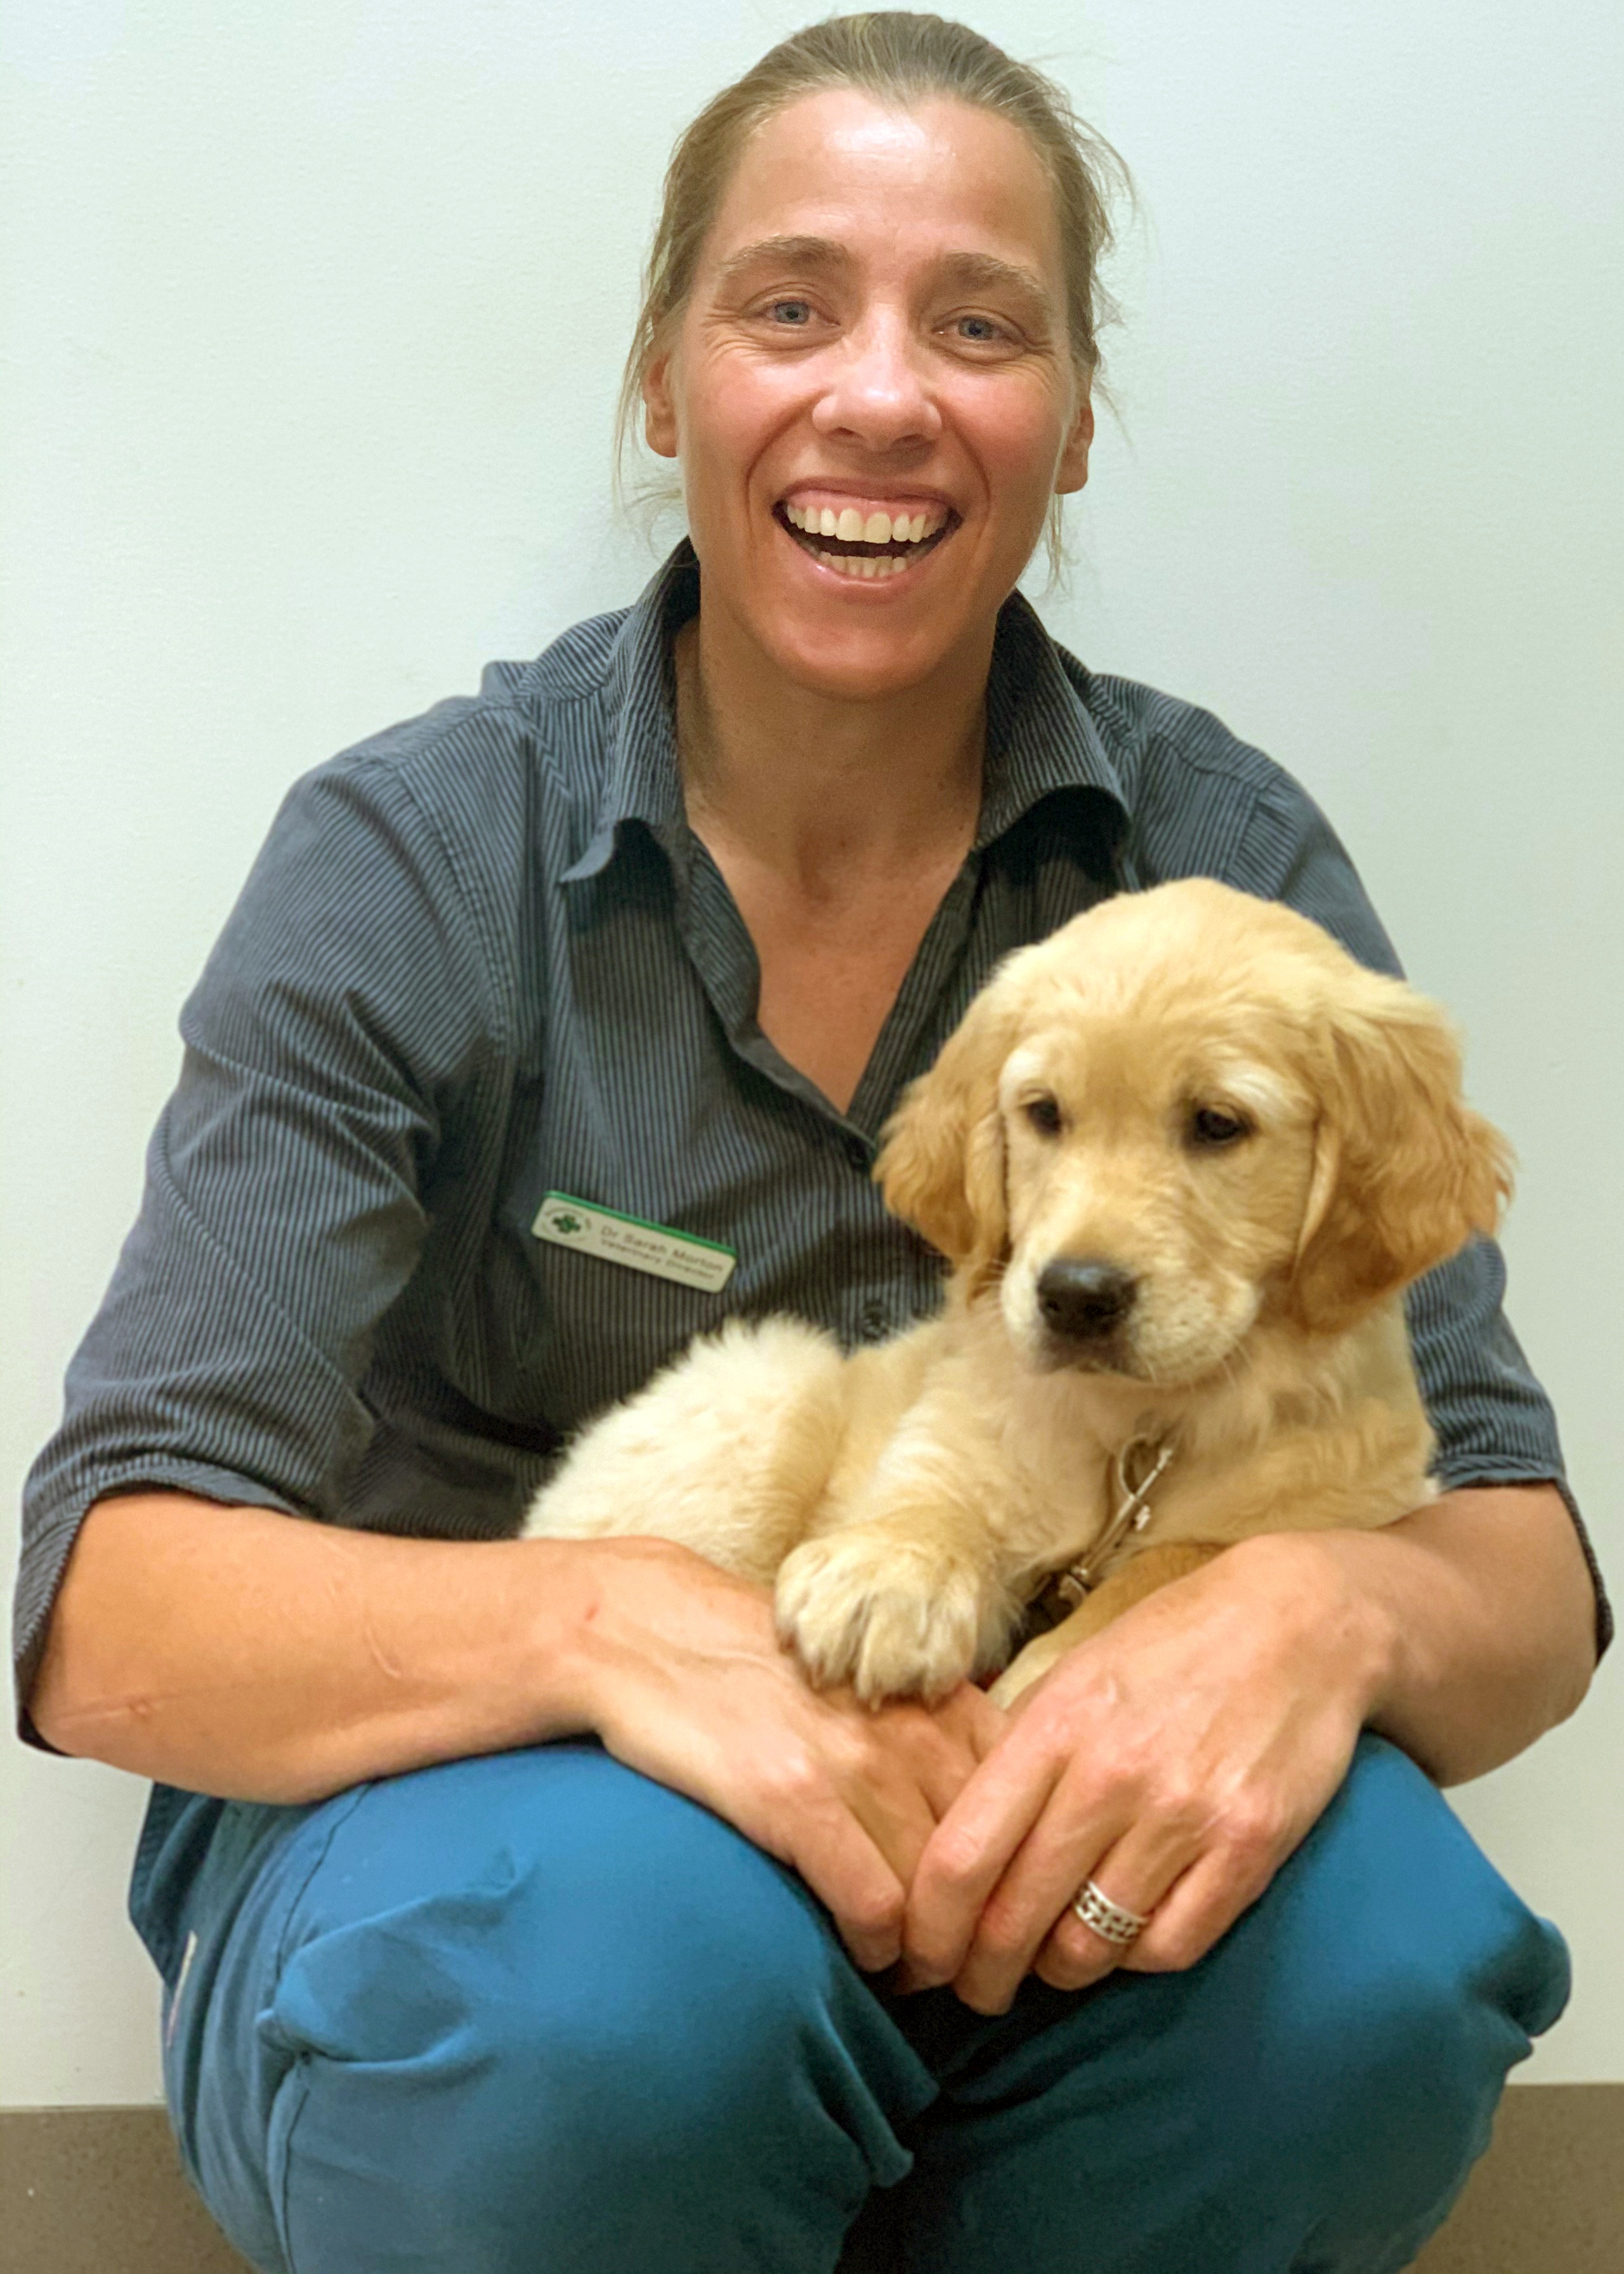 Mental health crisis: Why the suicide rate for veterinarians is so high